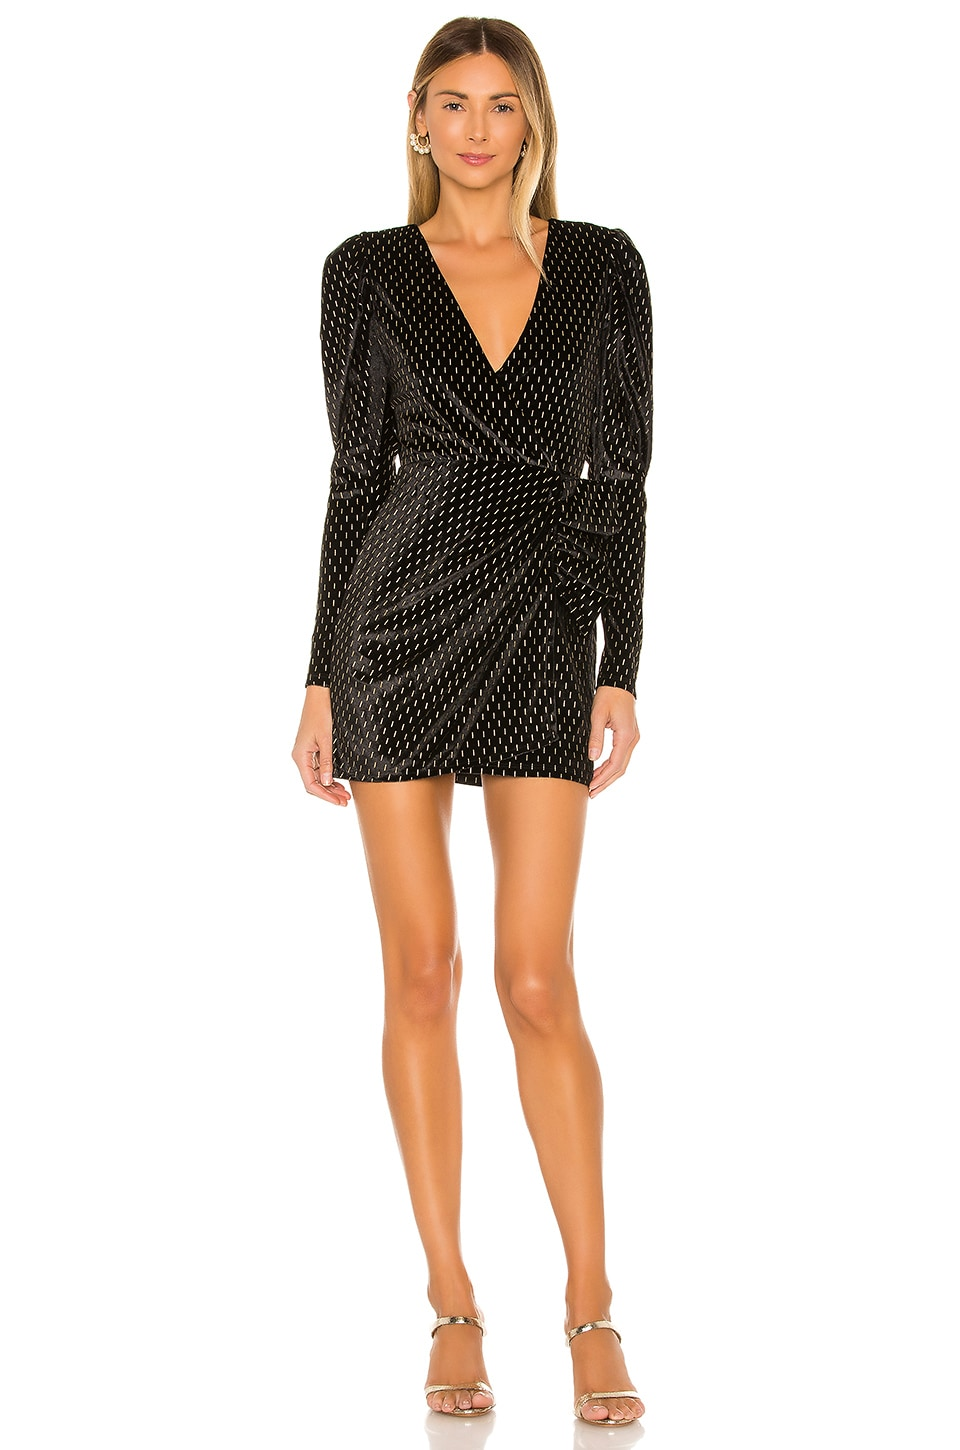 House of Harlow 1960 x REVOLVE Andrada Dress in Noir & Gold